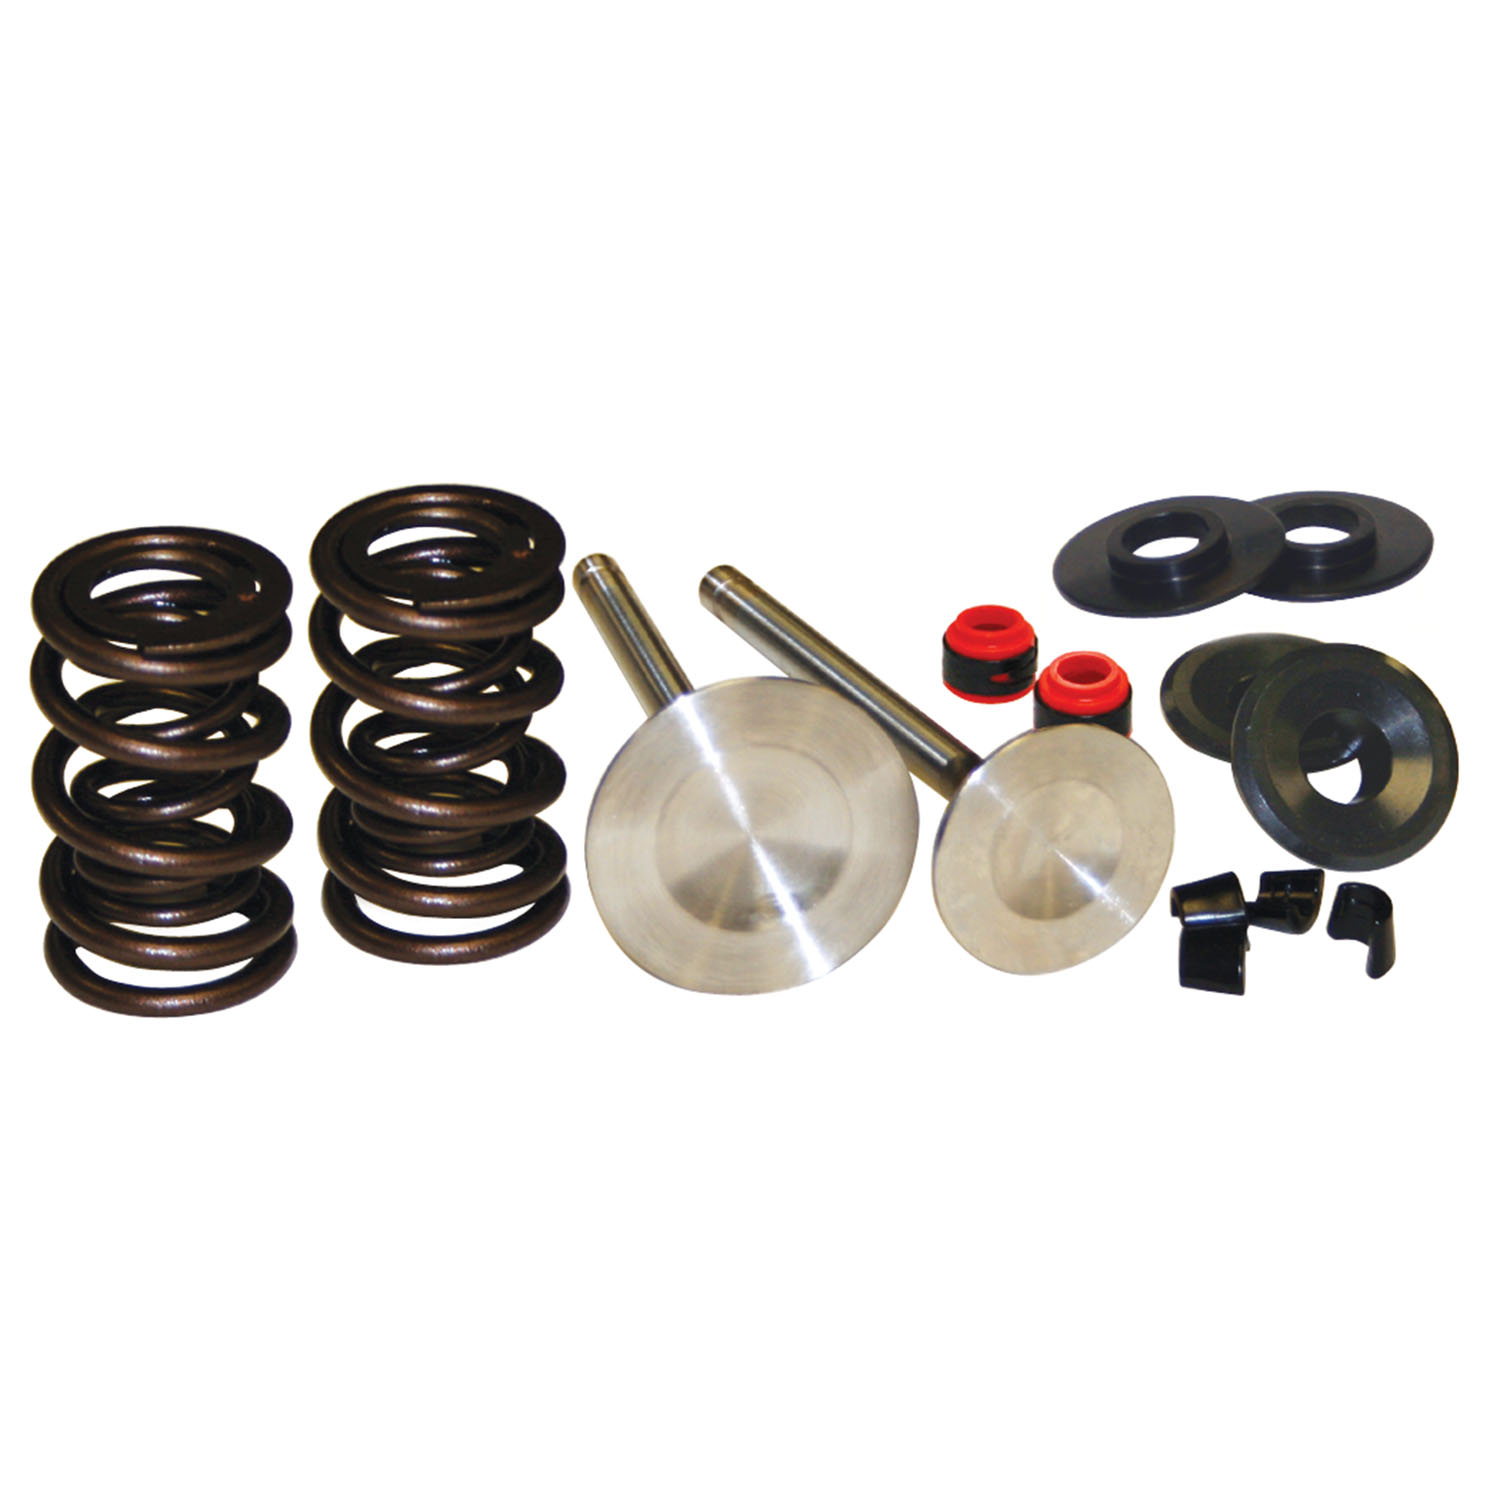 "Head Improvement Kit, Chev SB, W/2.02-1.60"" Valves, Mech"